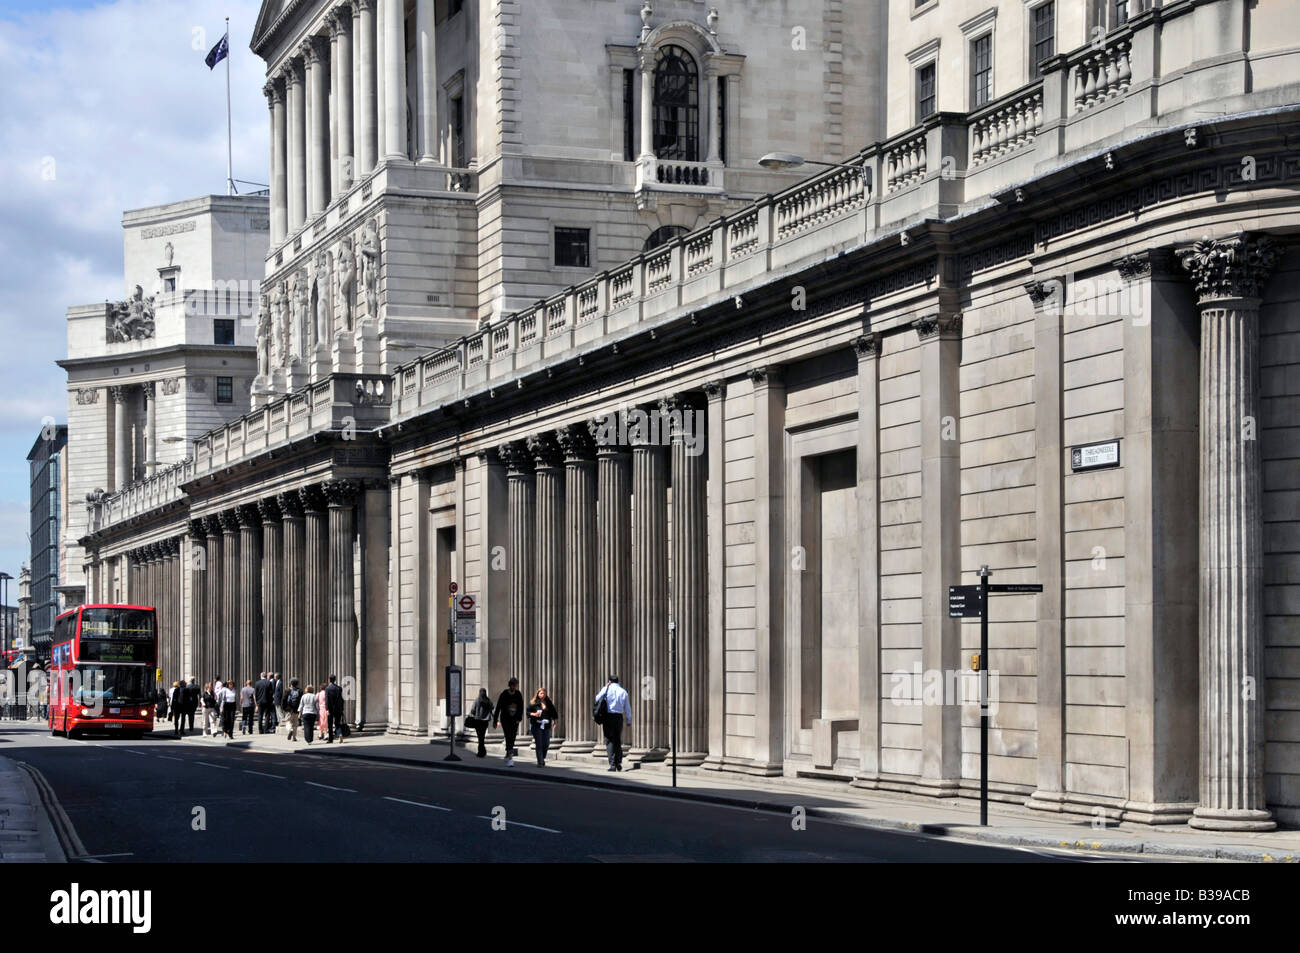 The front of the Bank of England in Threadneedle Street City of London England UK - Stock Image